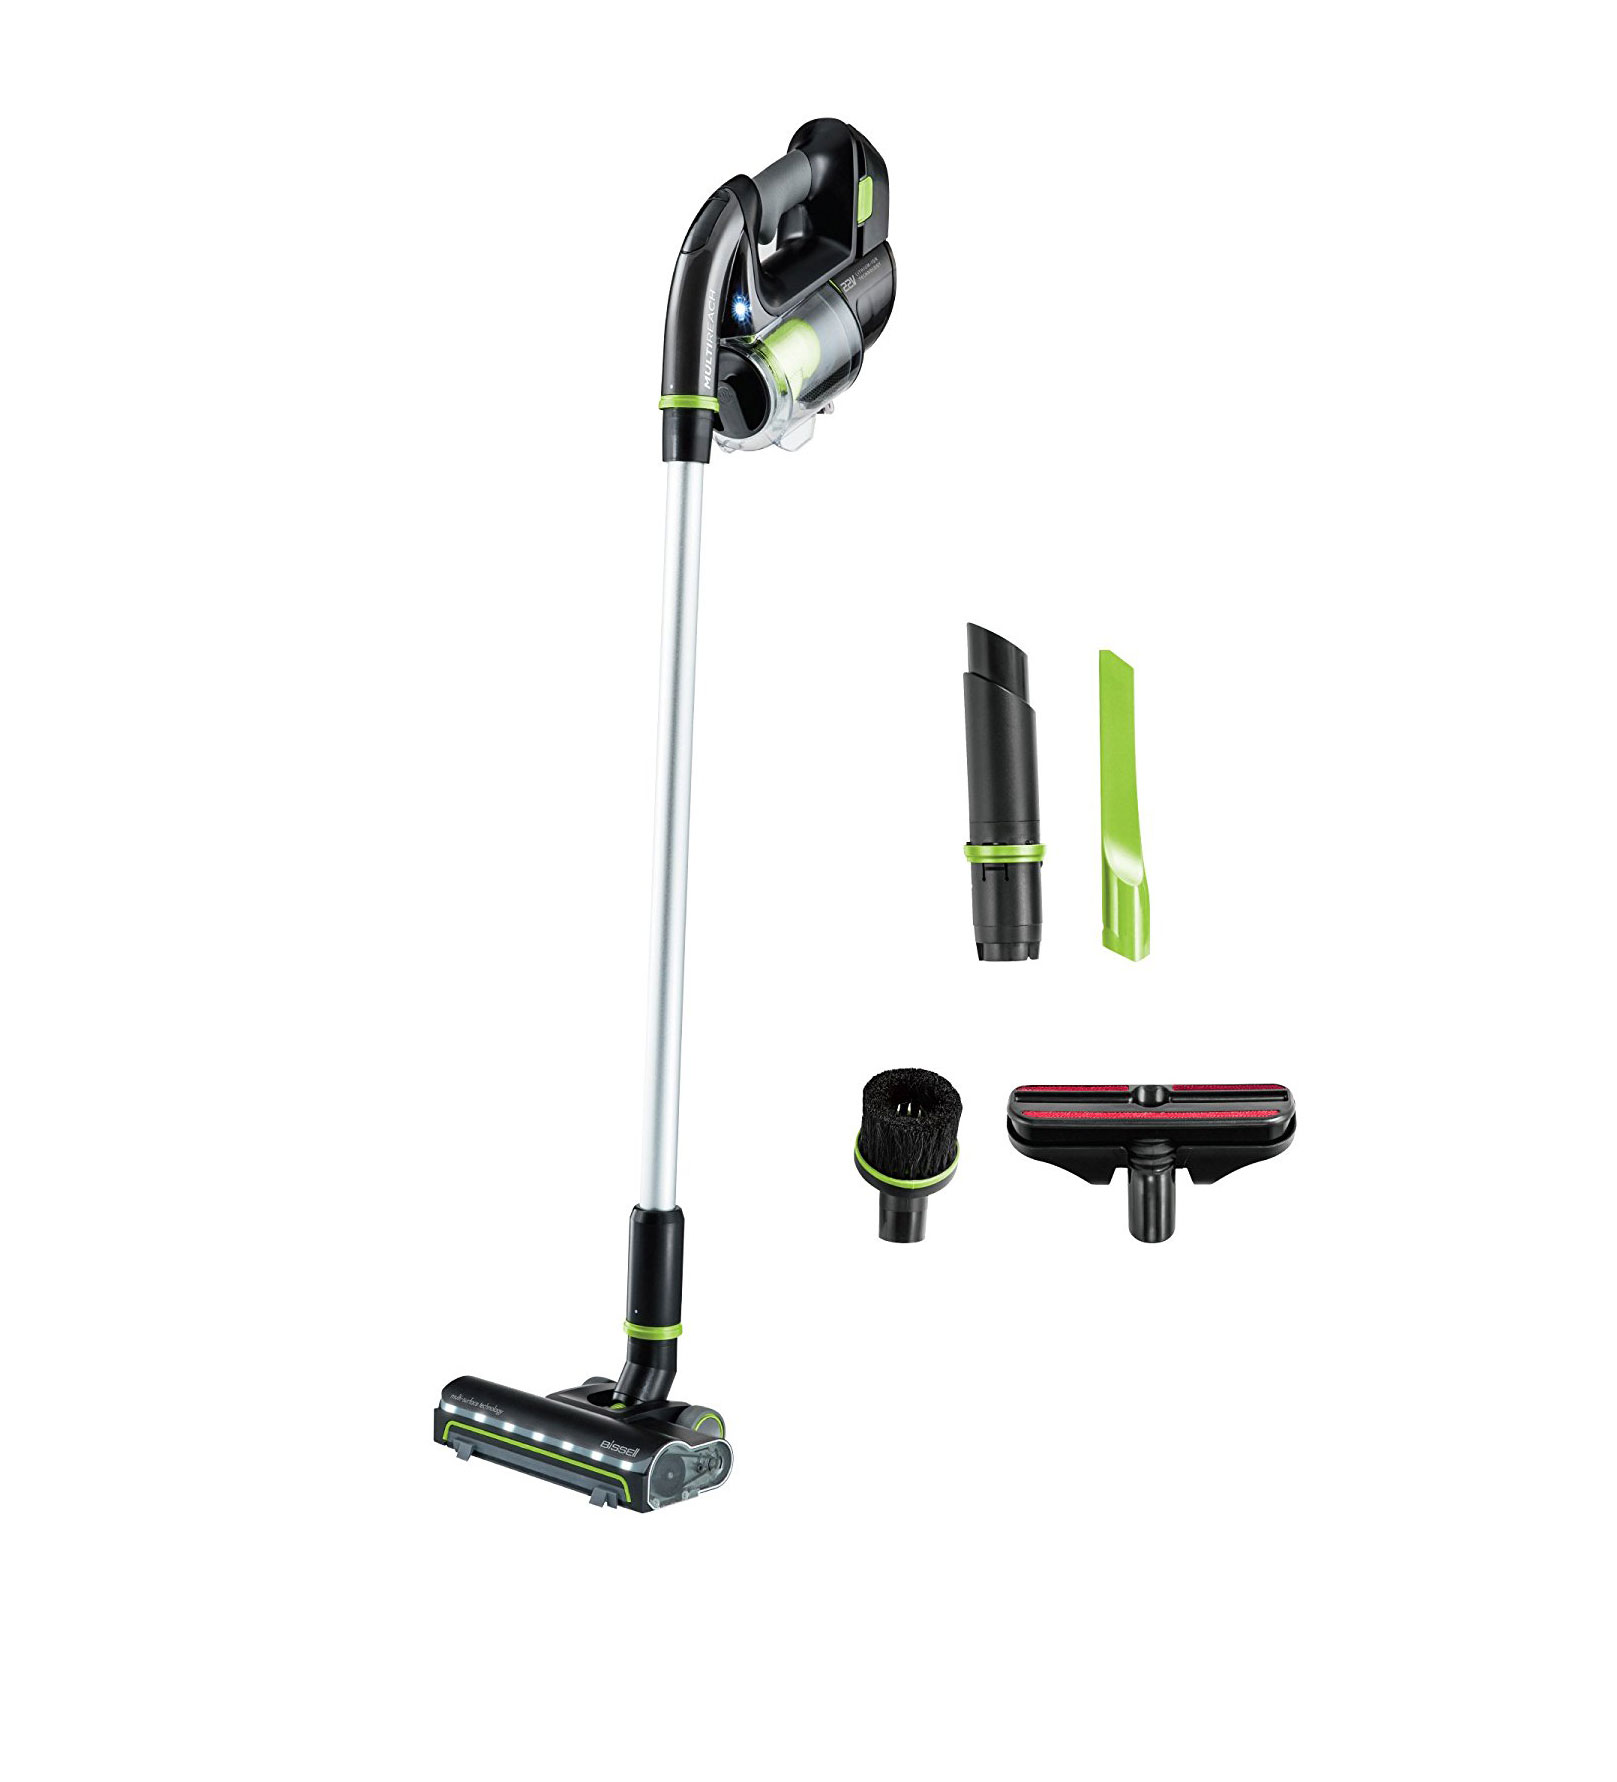 Best Stick Vacuums For Less Than 200